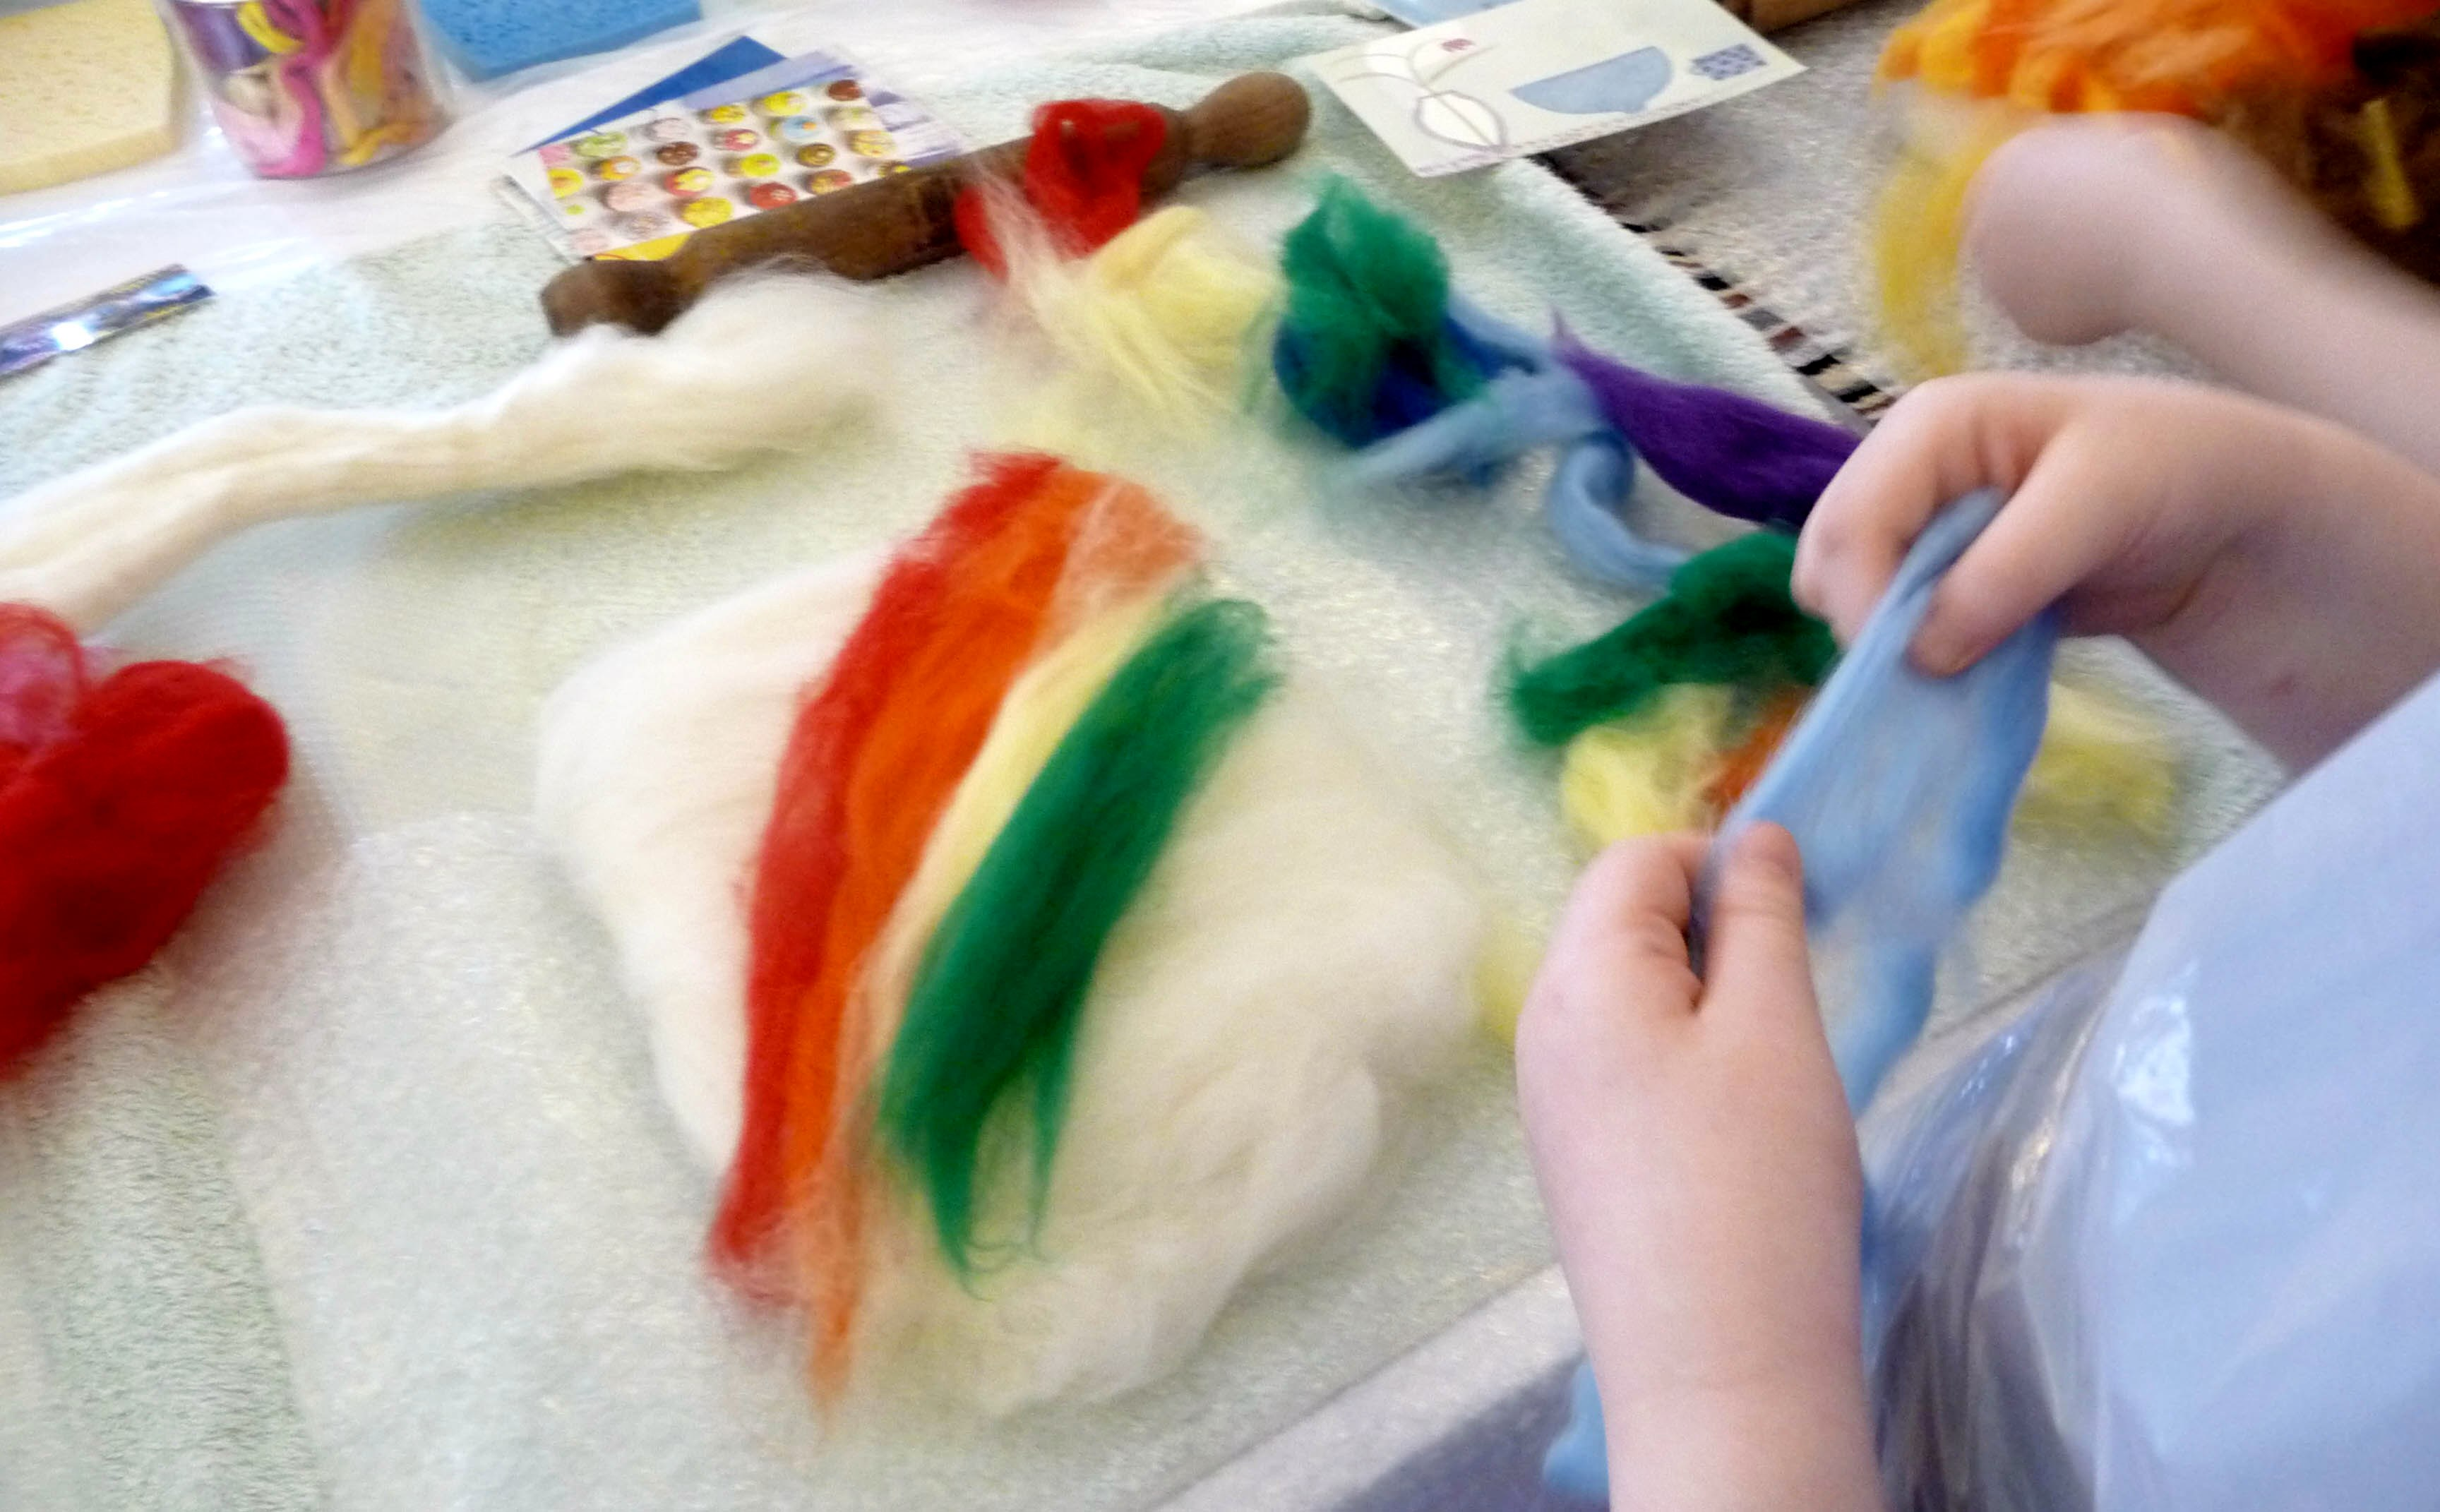 laying down the coloured wool layer. This picture will form a rainbow